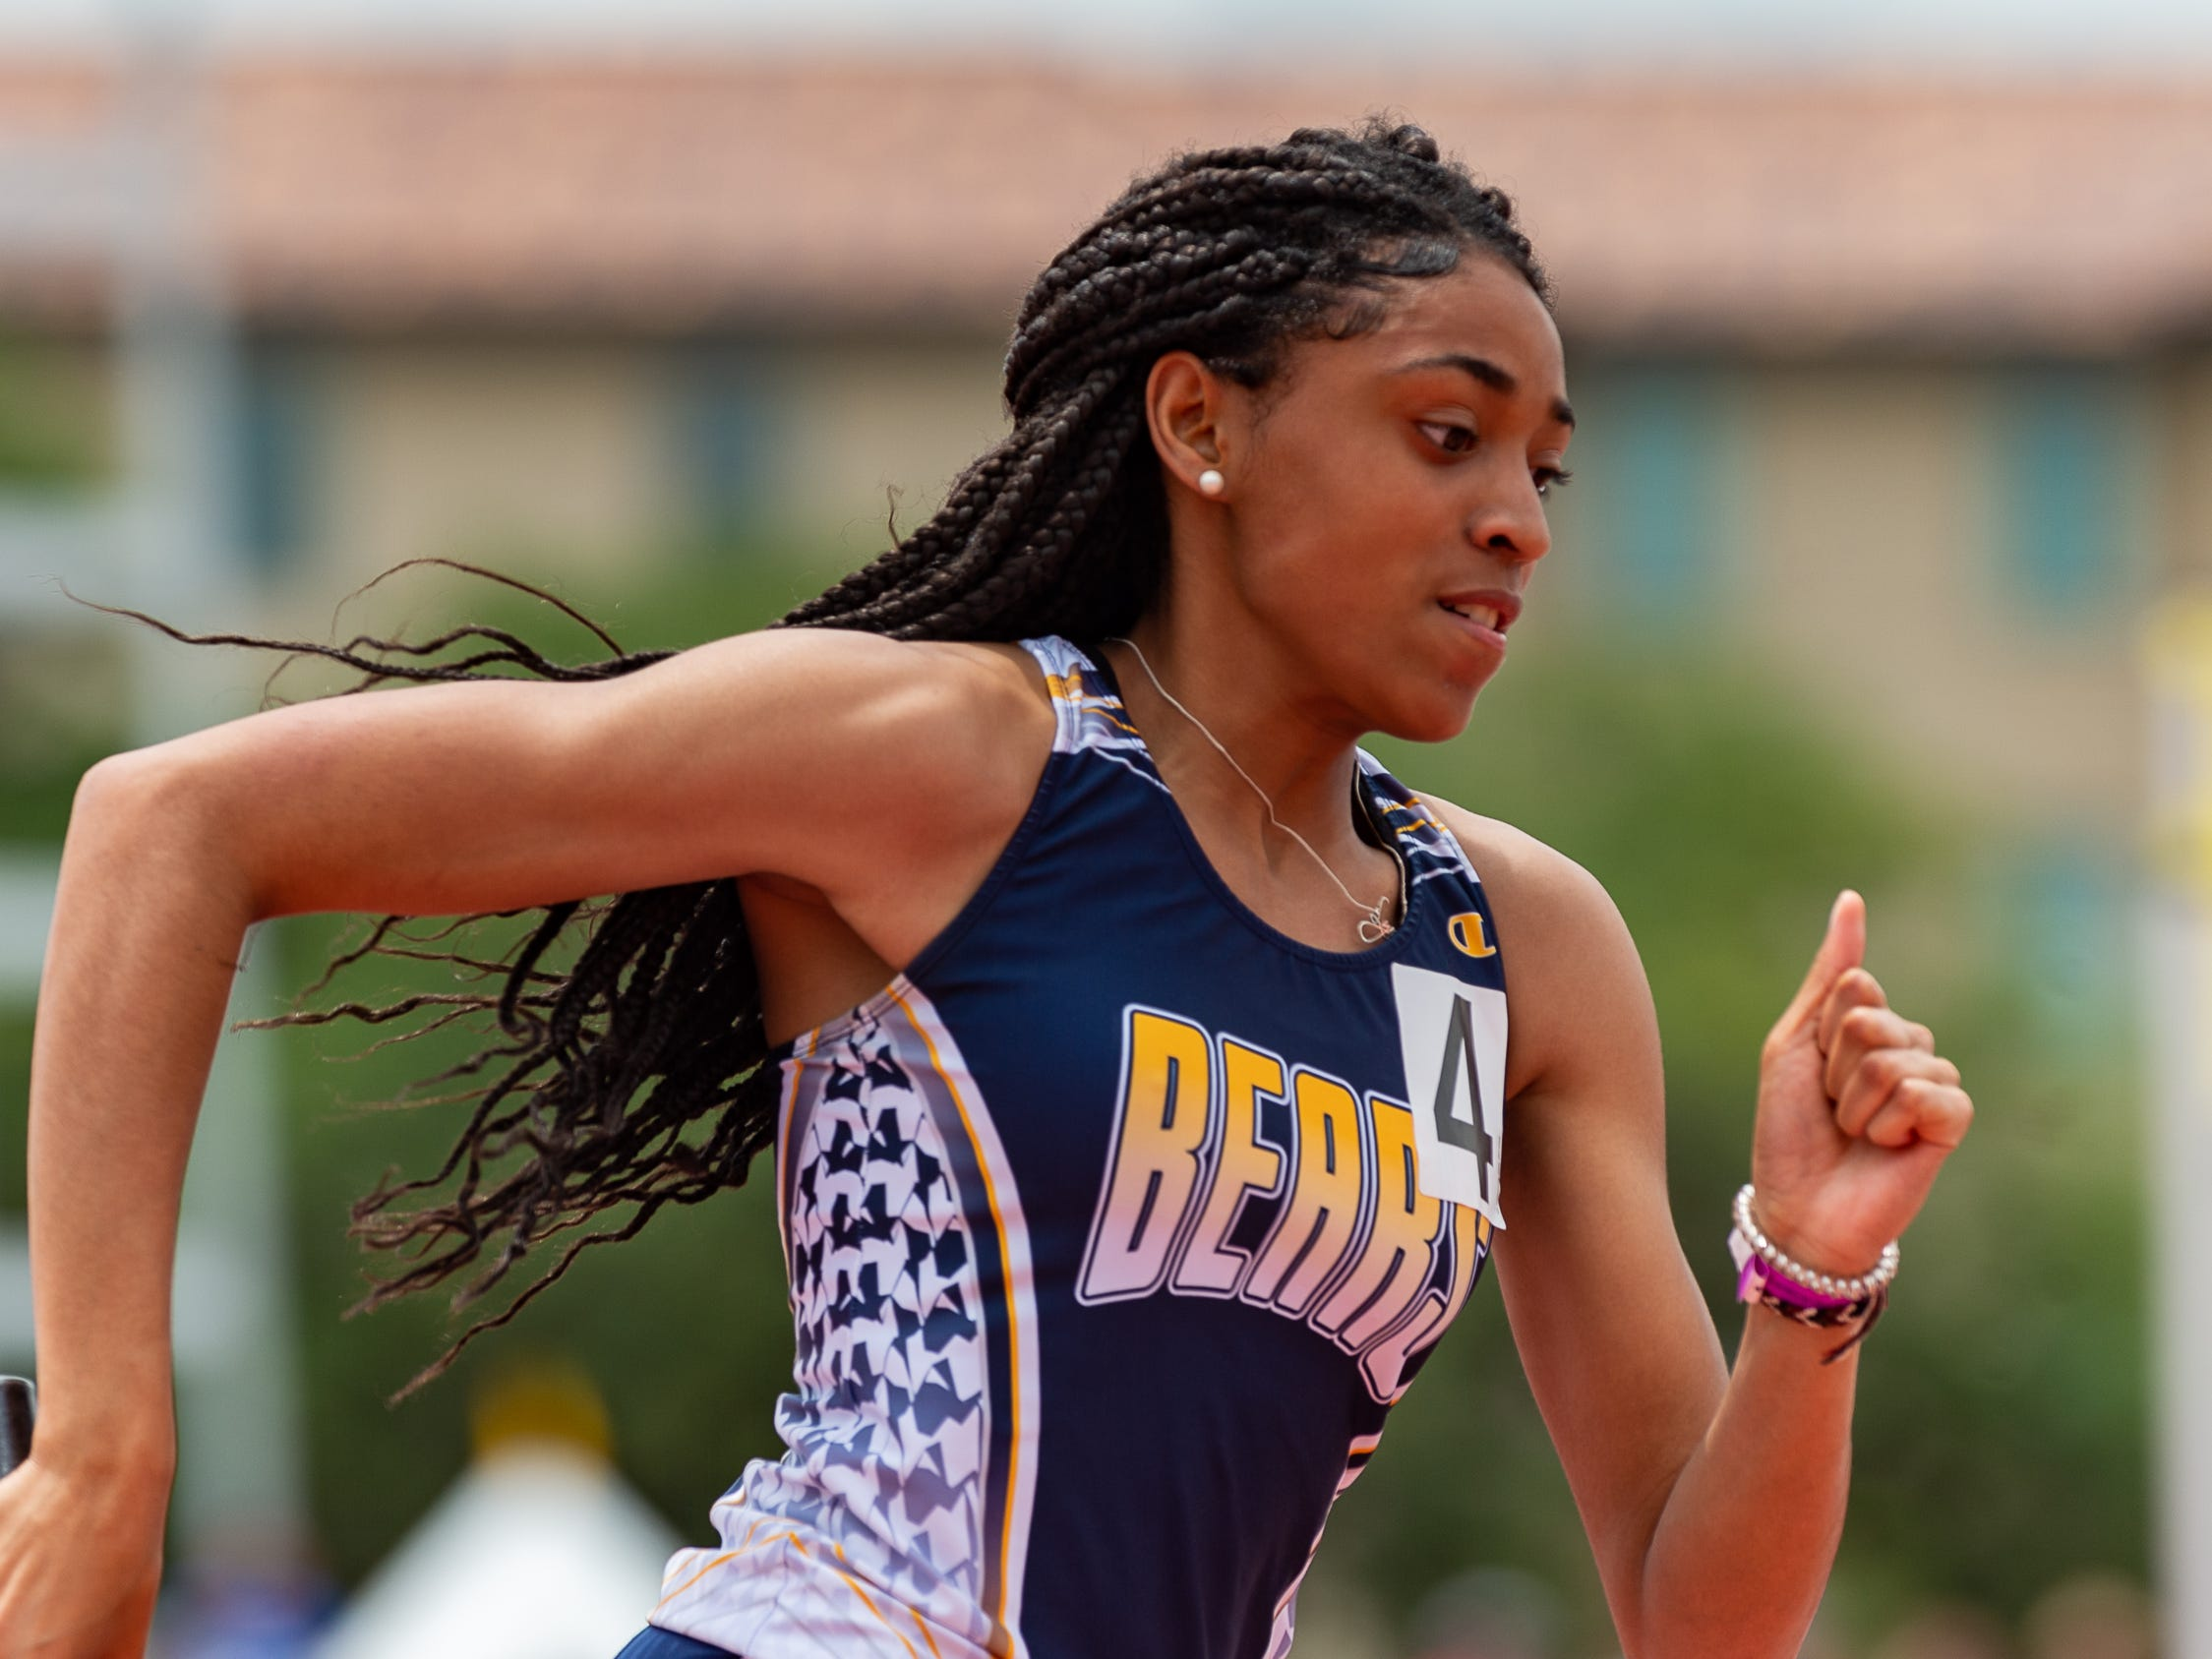 Carencro girls 4x800 relay at The LHSAA Sate Track Meet at Bernie Moore Track in Baton Rouge, LA. Saturday, May 4, 2019.